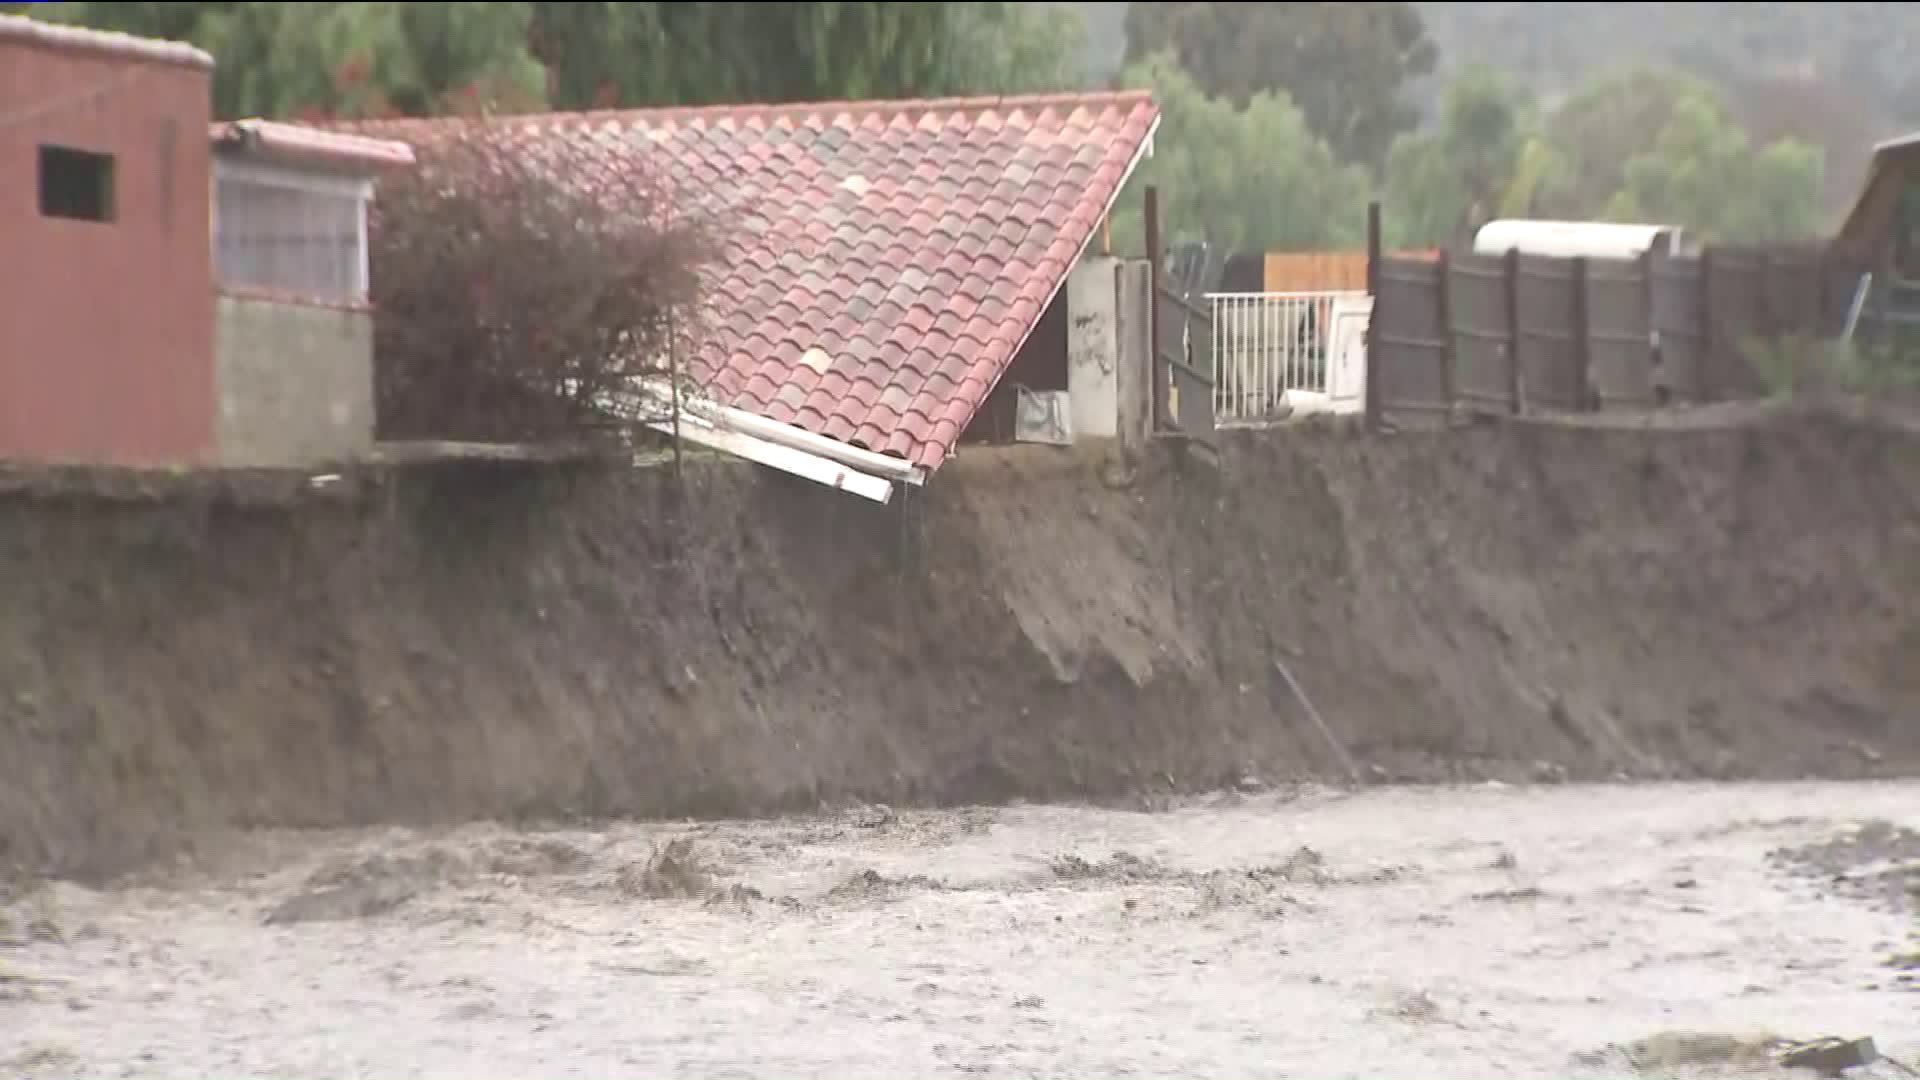 The roof of a structure appears collapsed on an eroded hillside near a rain-swollen creek in Lake Elsinore on Feb. 14, 2019. (Credit: KTLA)